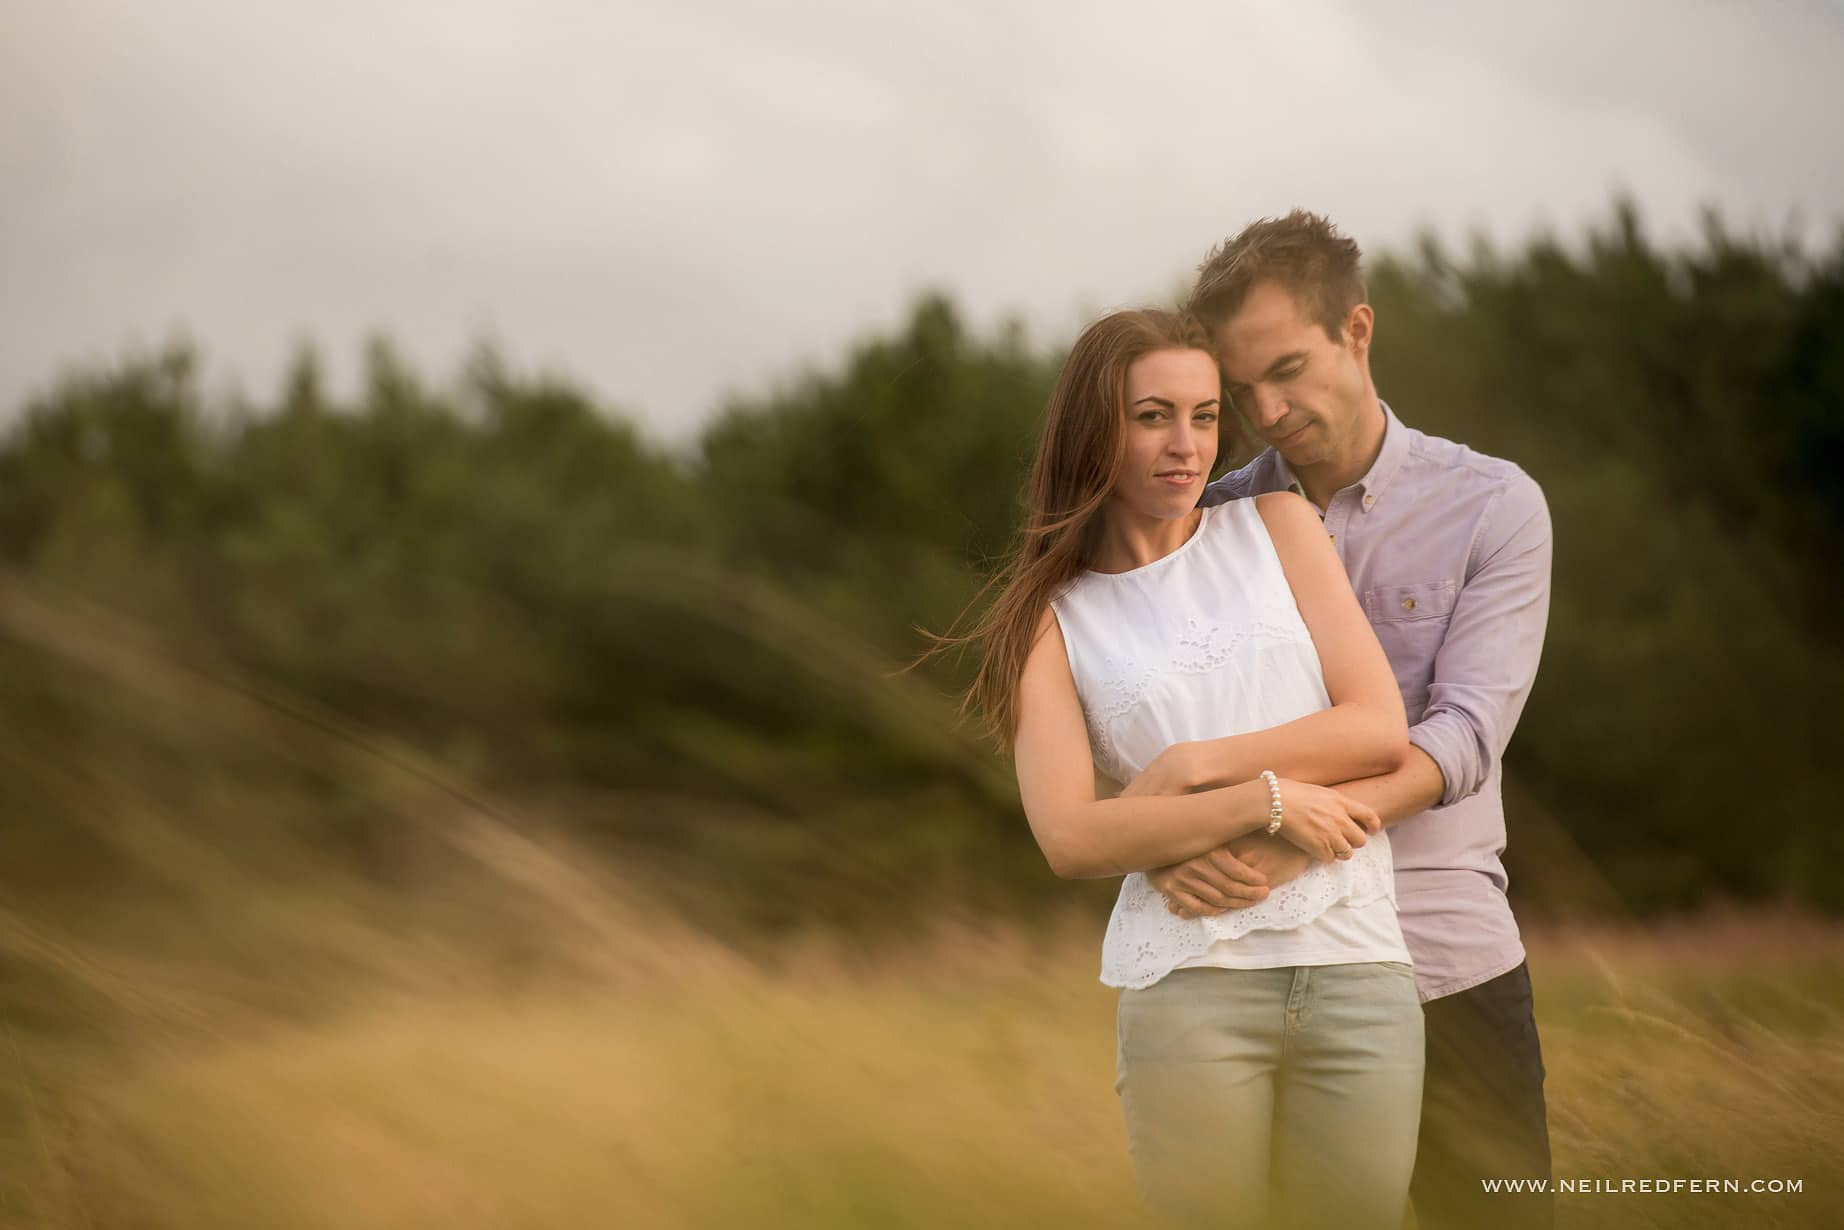 Formby engagement shoot 03